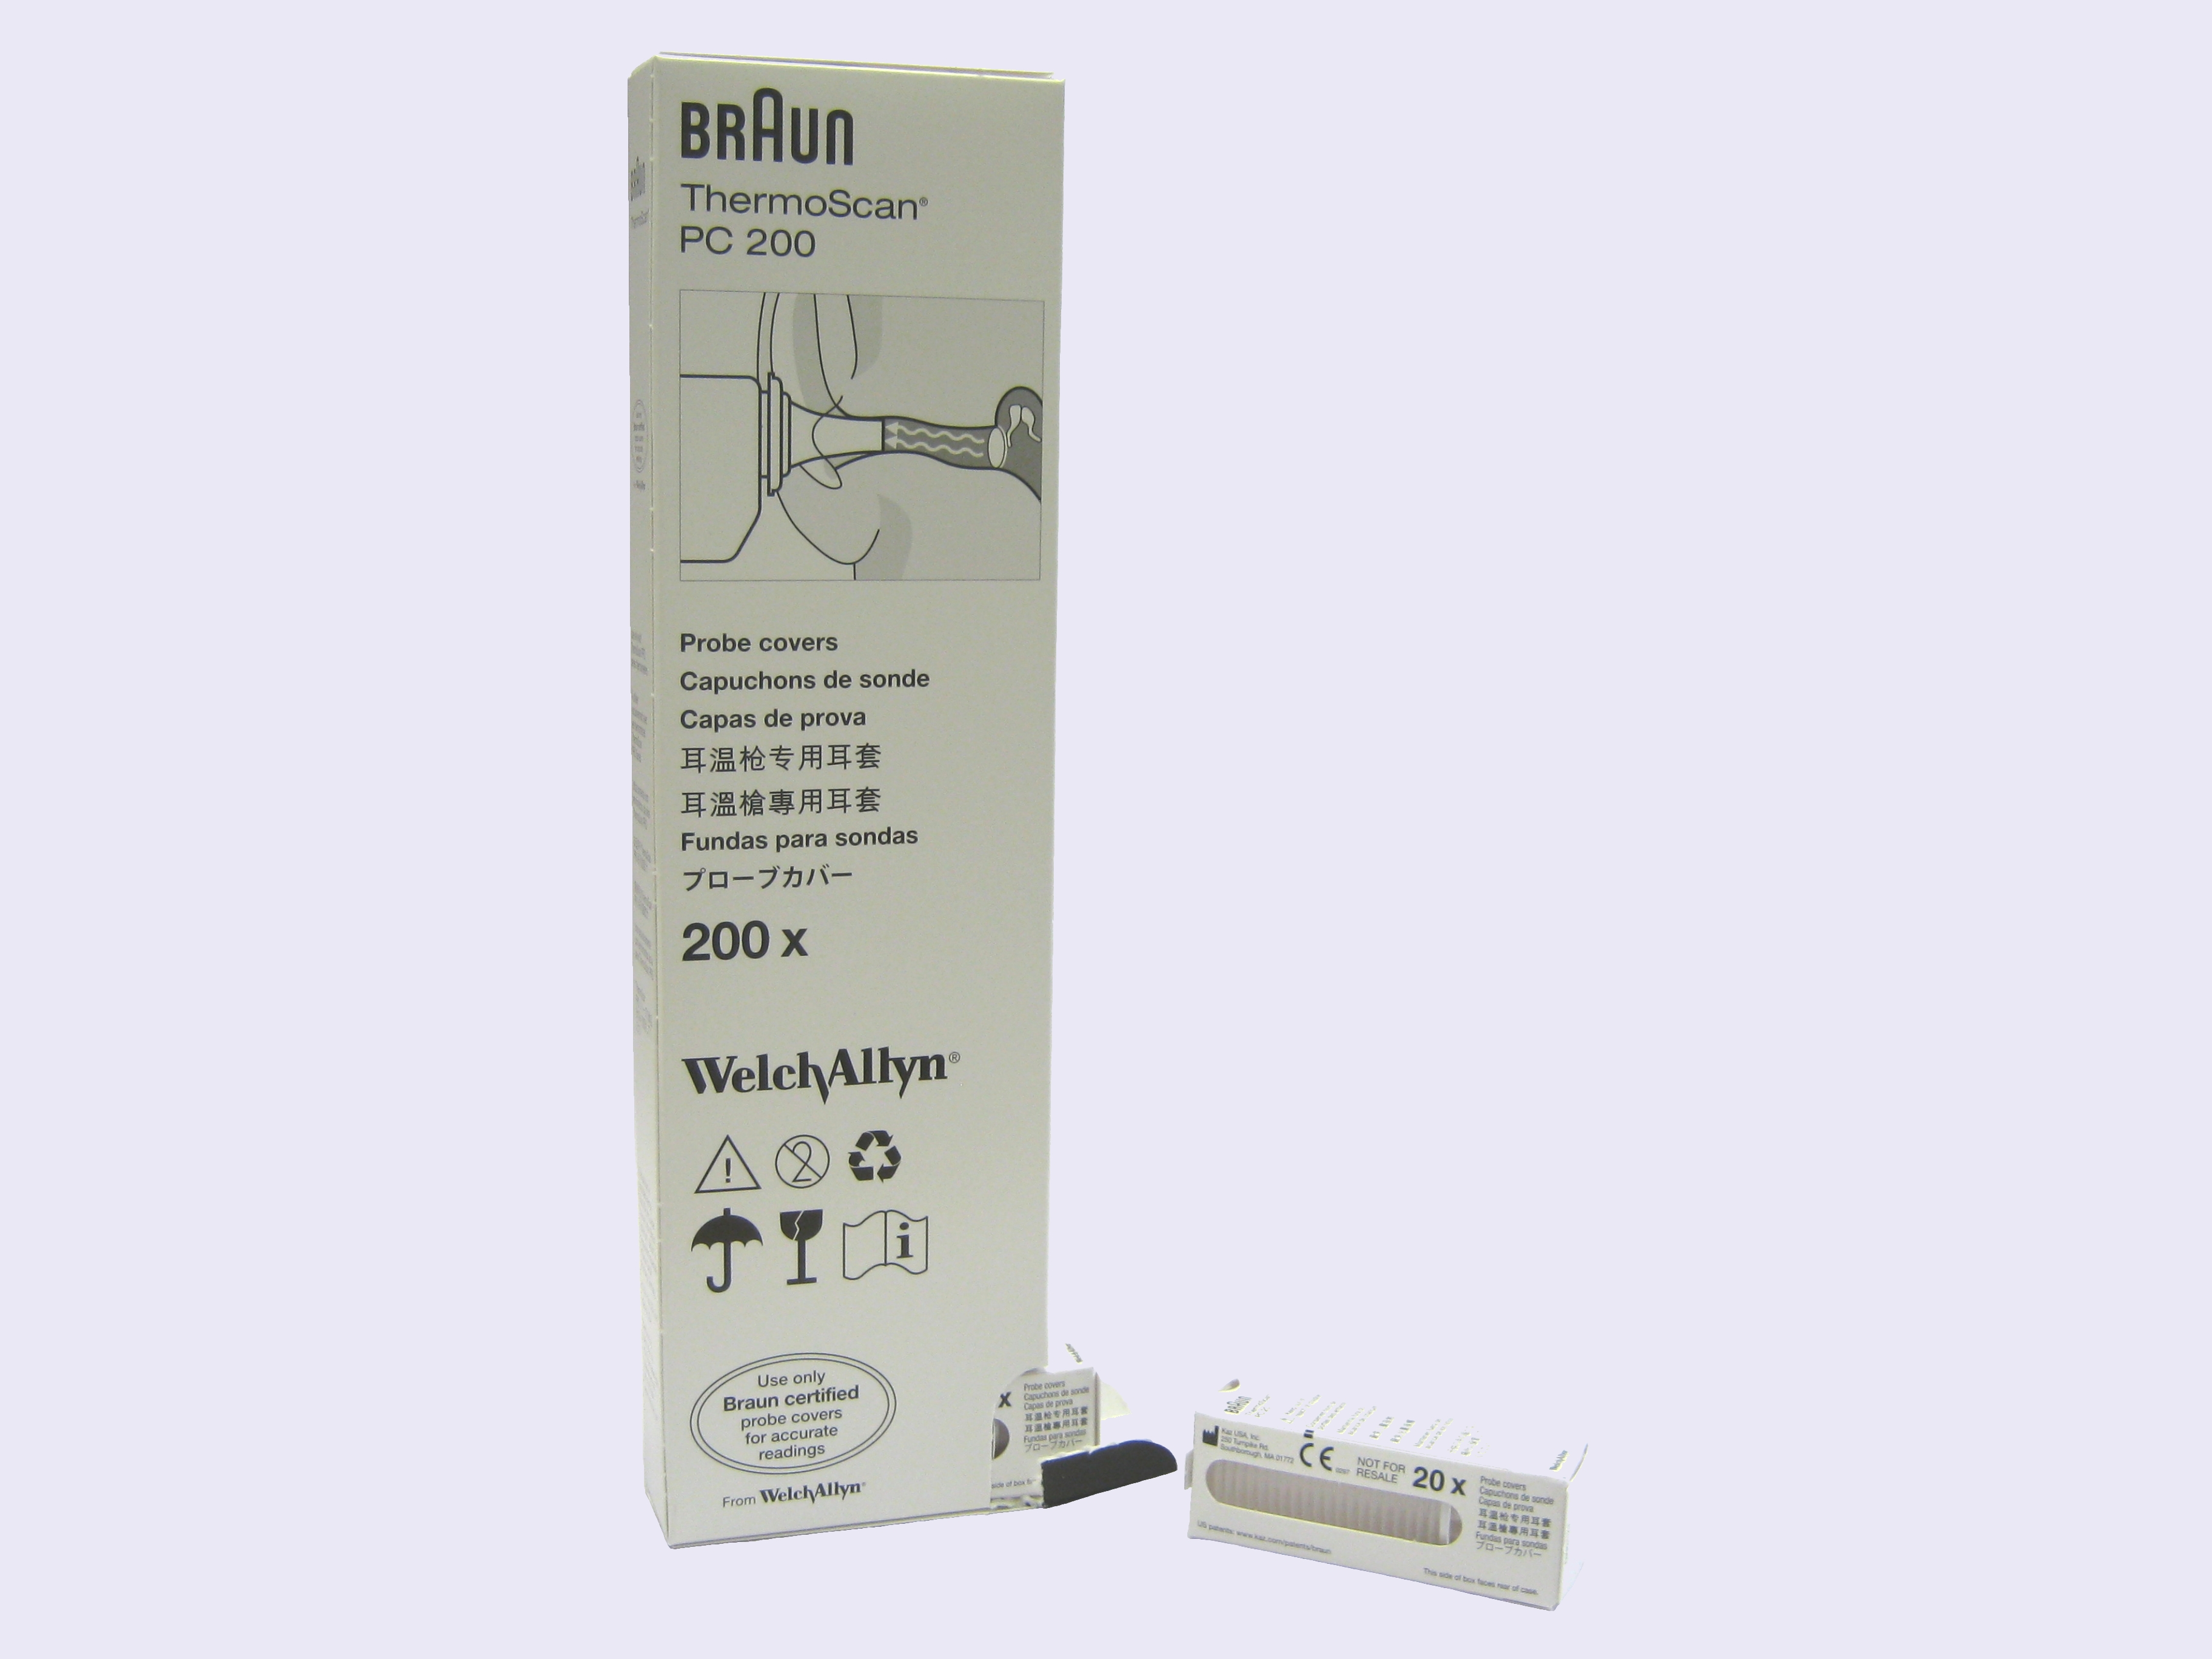 Braun williamhill official android app Lens Filters for Thermometers - 80 ct - Free Shipping